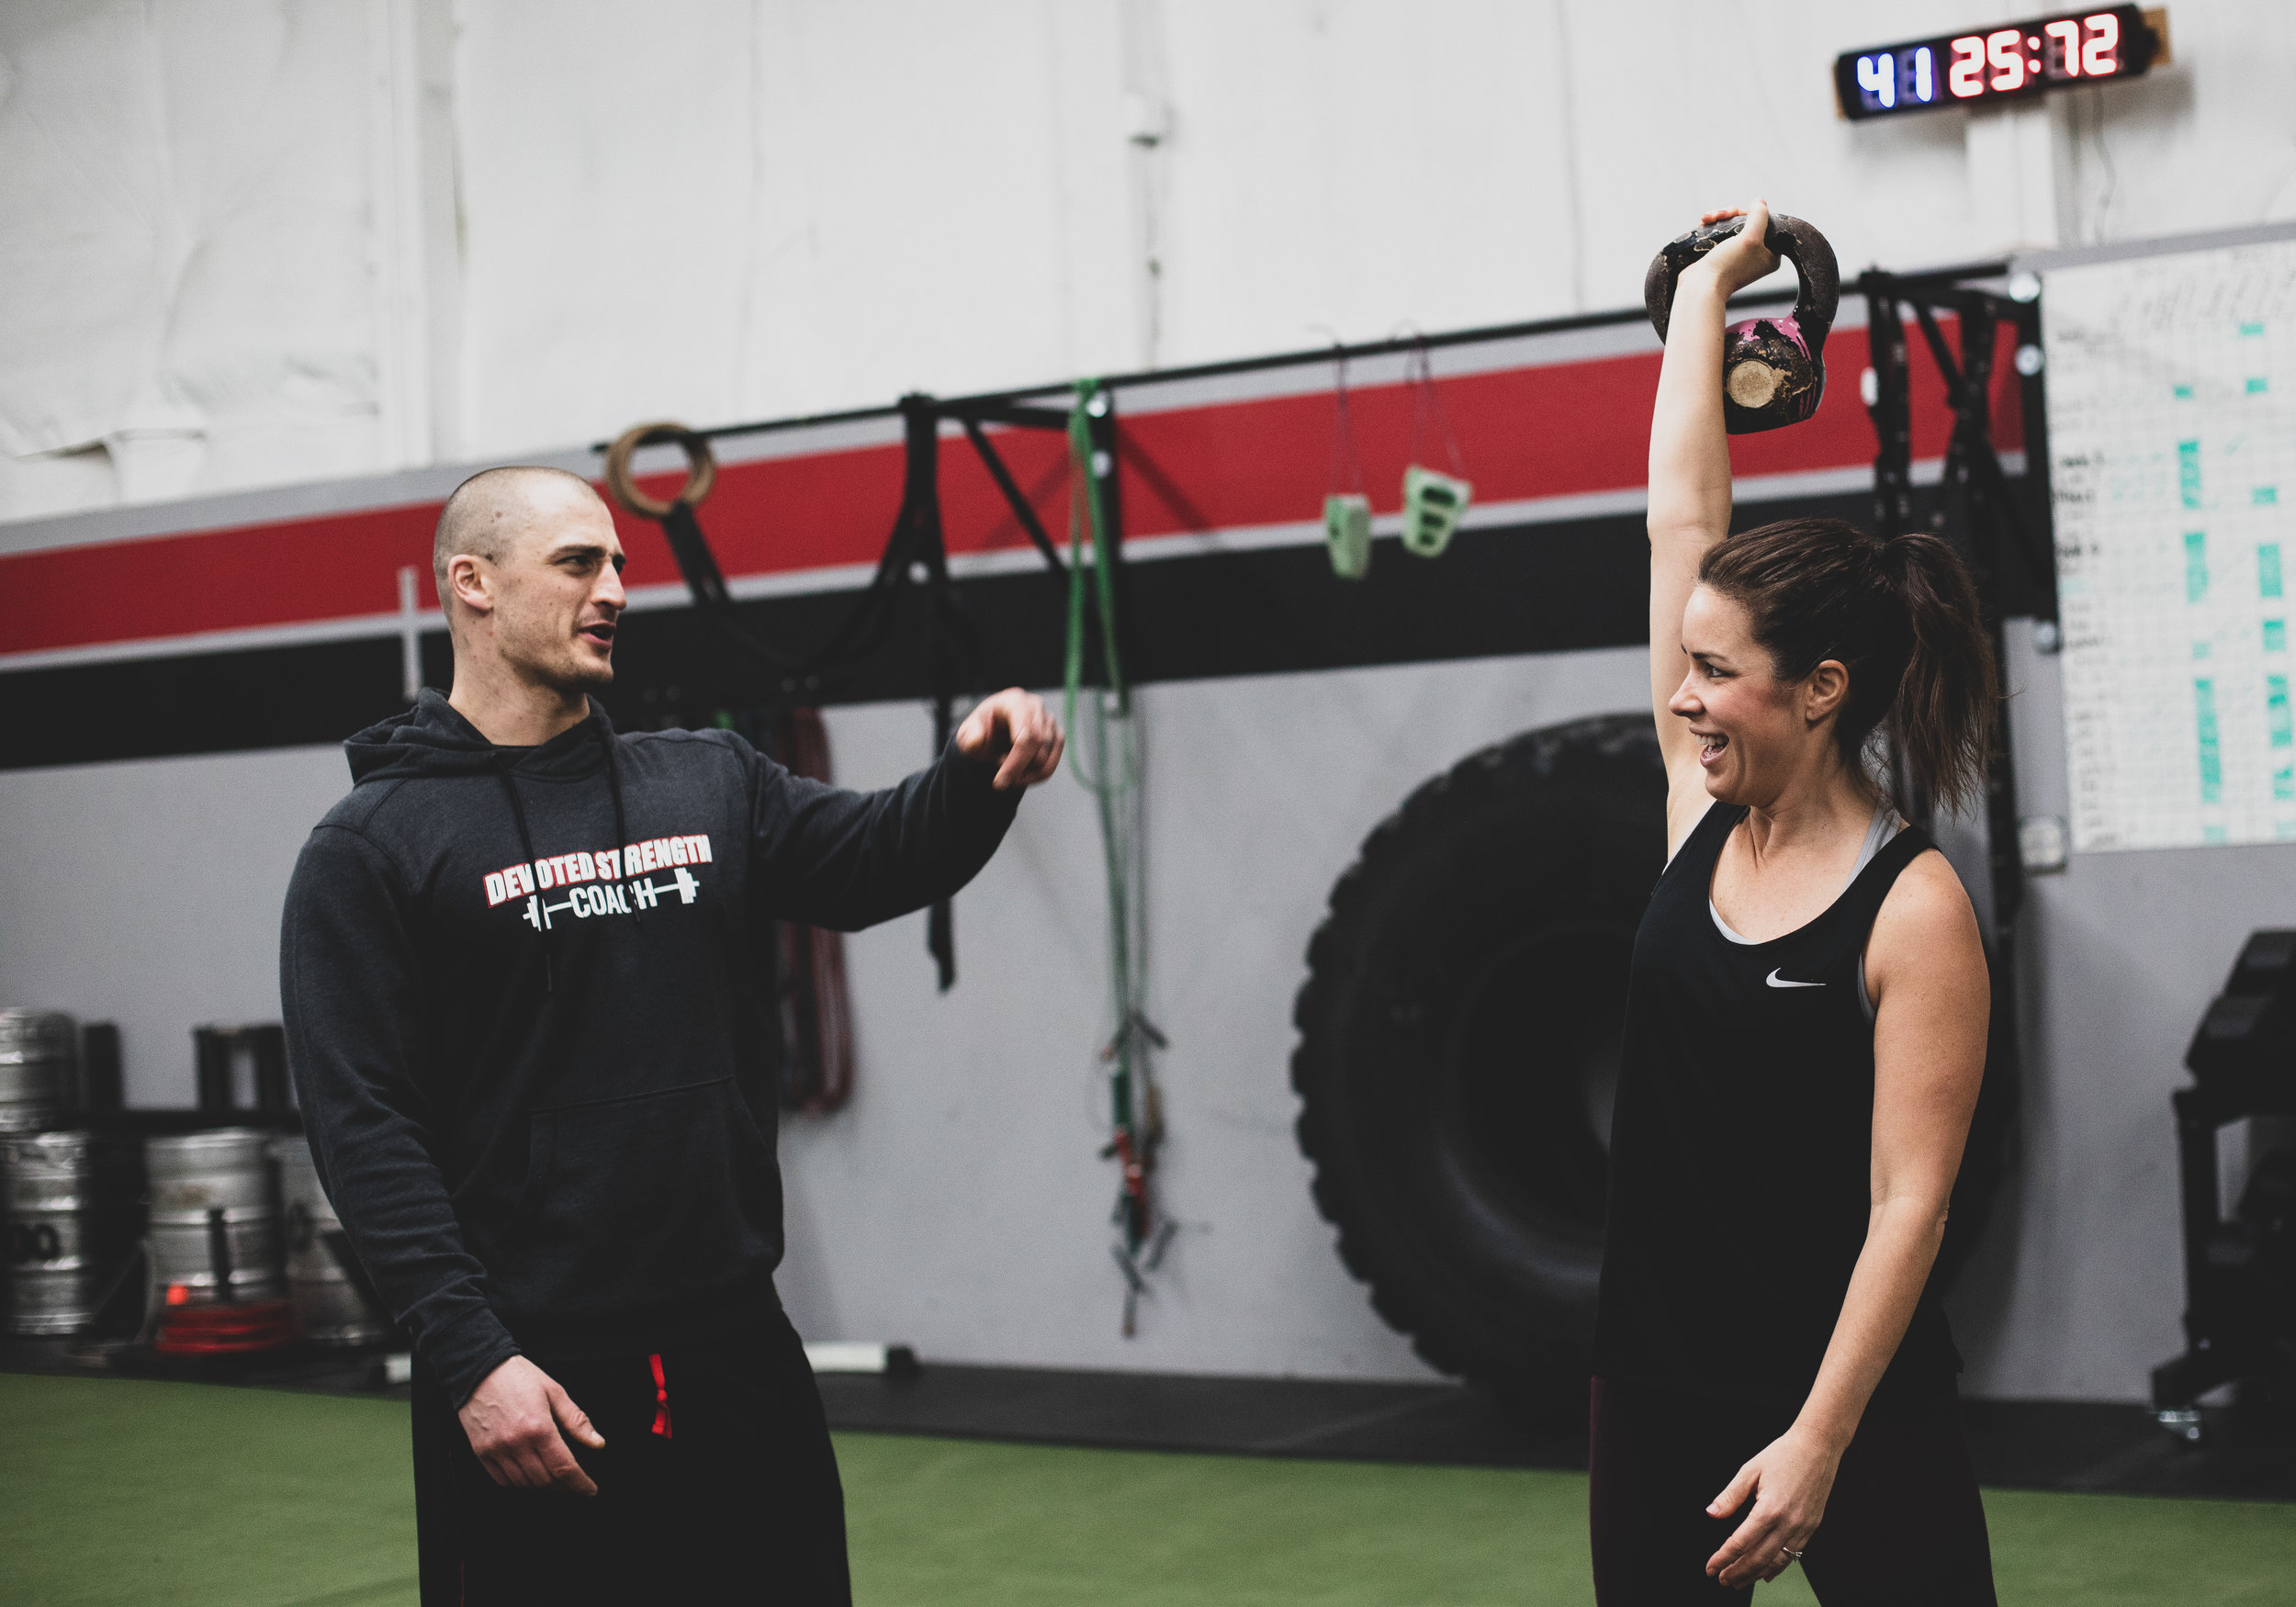 The 21-Day Kick-Start   Perfect for adults needing a fresh start or just looking to try something new. Experience the best that Devoted Fitness & Strength has to offer commitment free.   Get Started